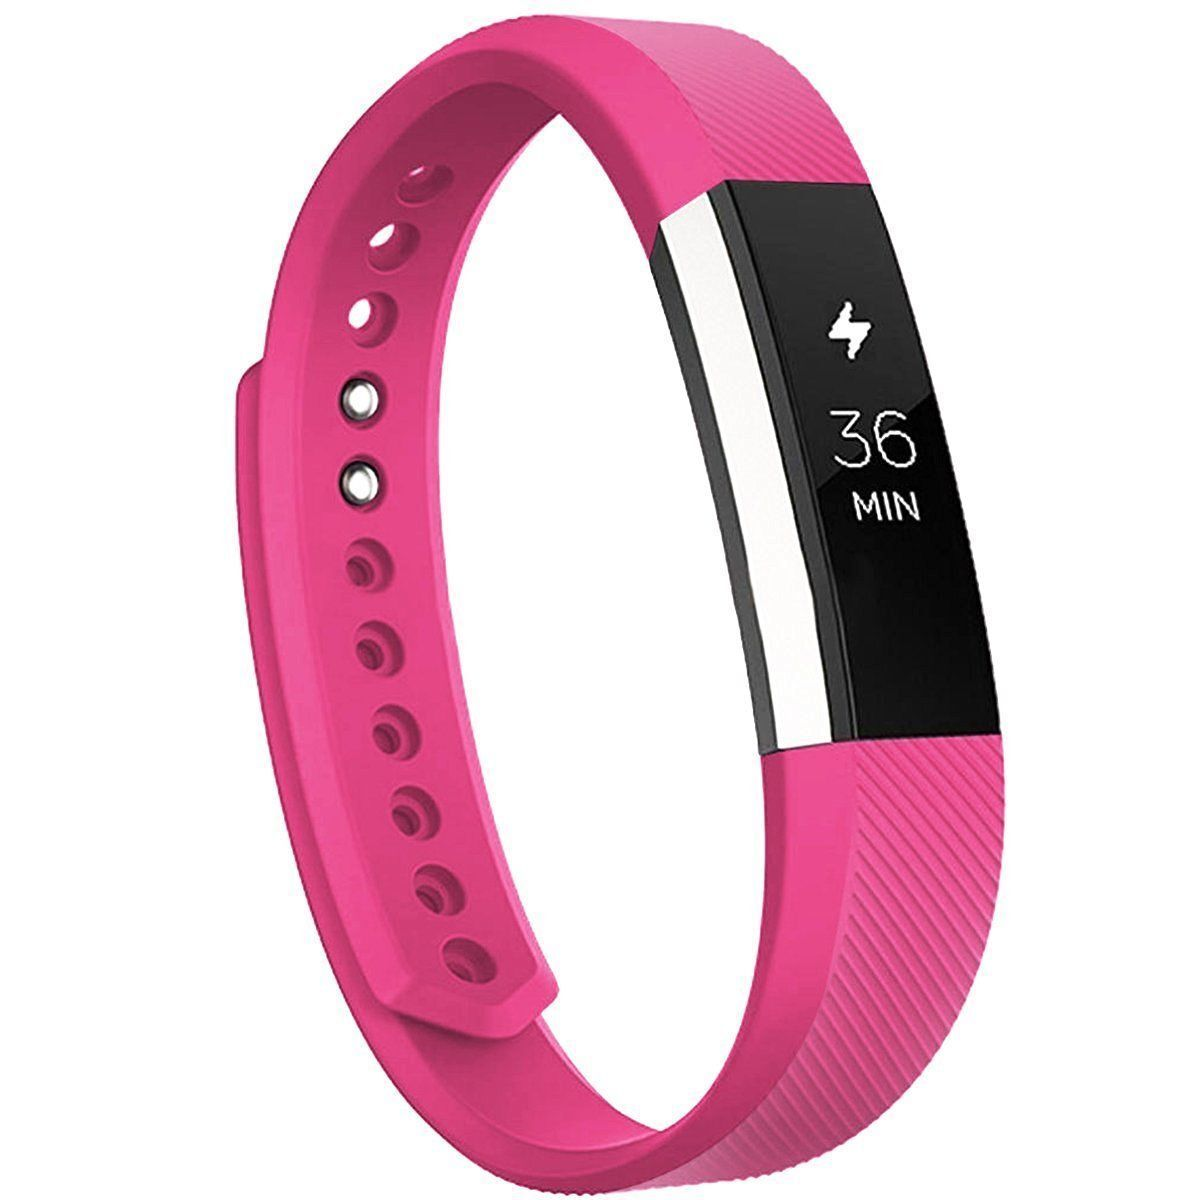 Replacement Silicone Wrist Band Strap For Fitbit Alta/ Fitbit Alta HR Hot Pink